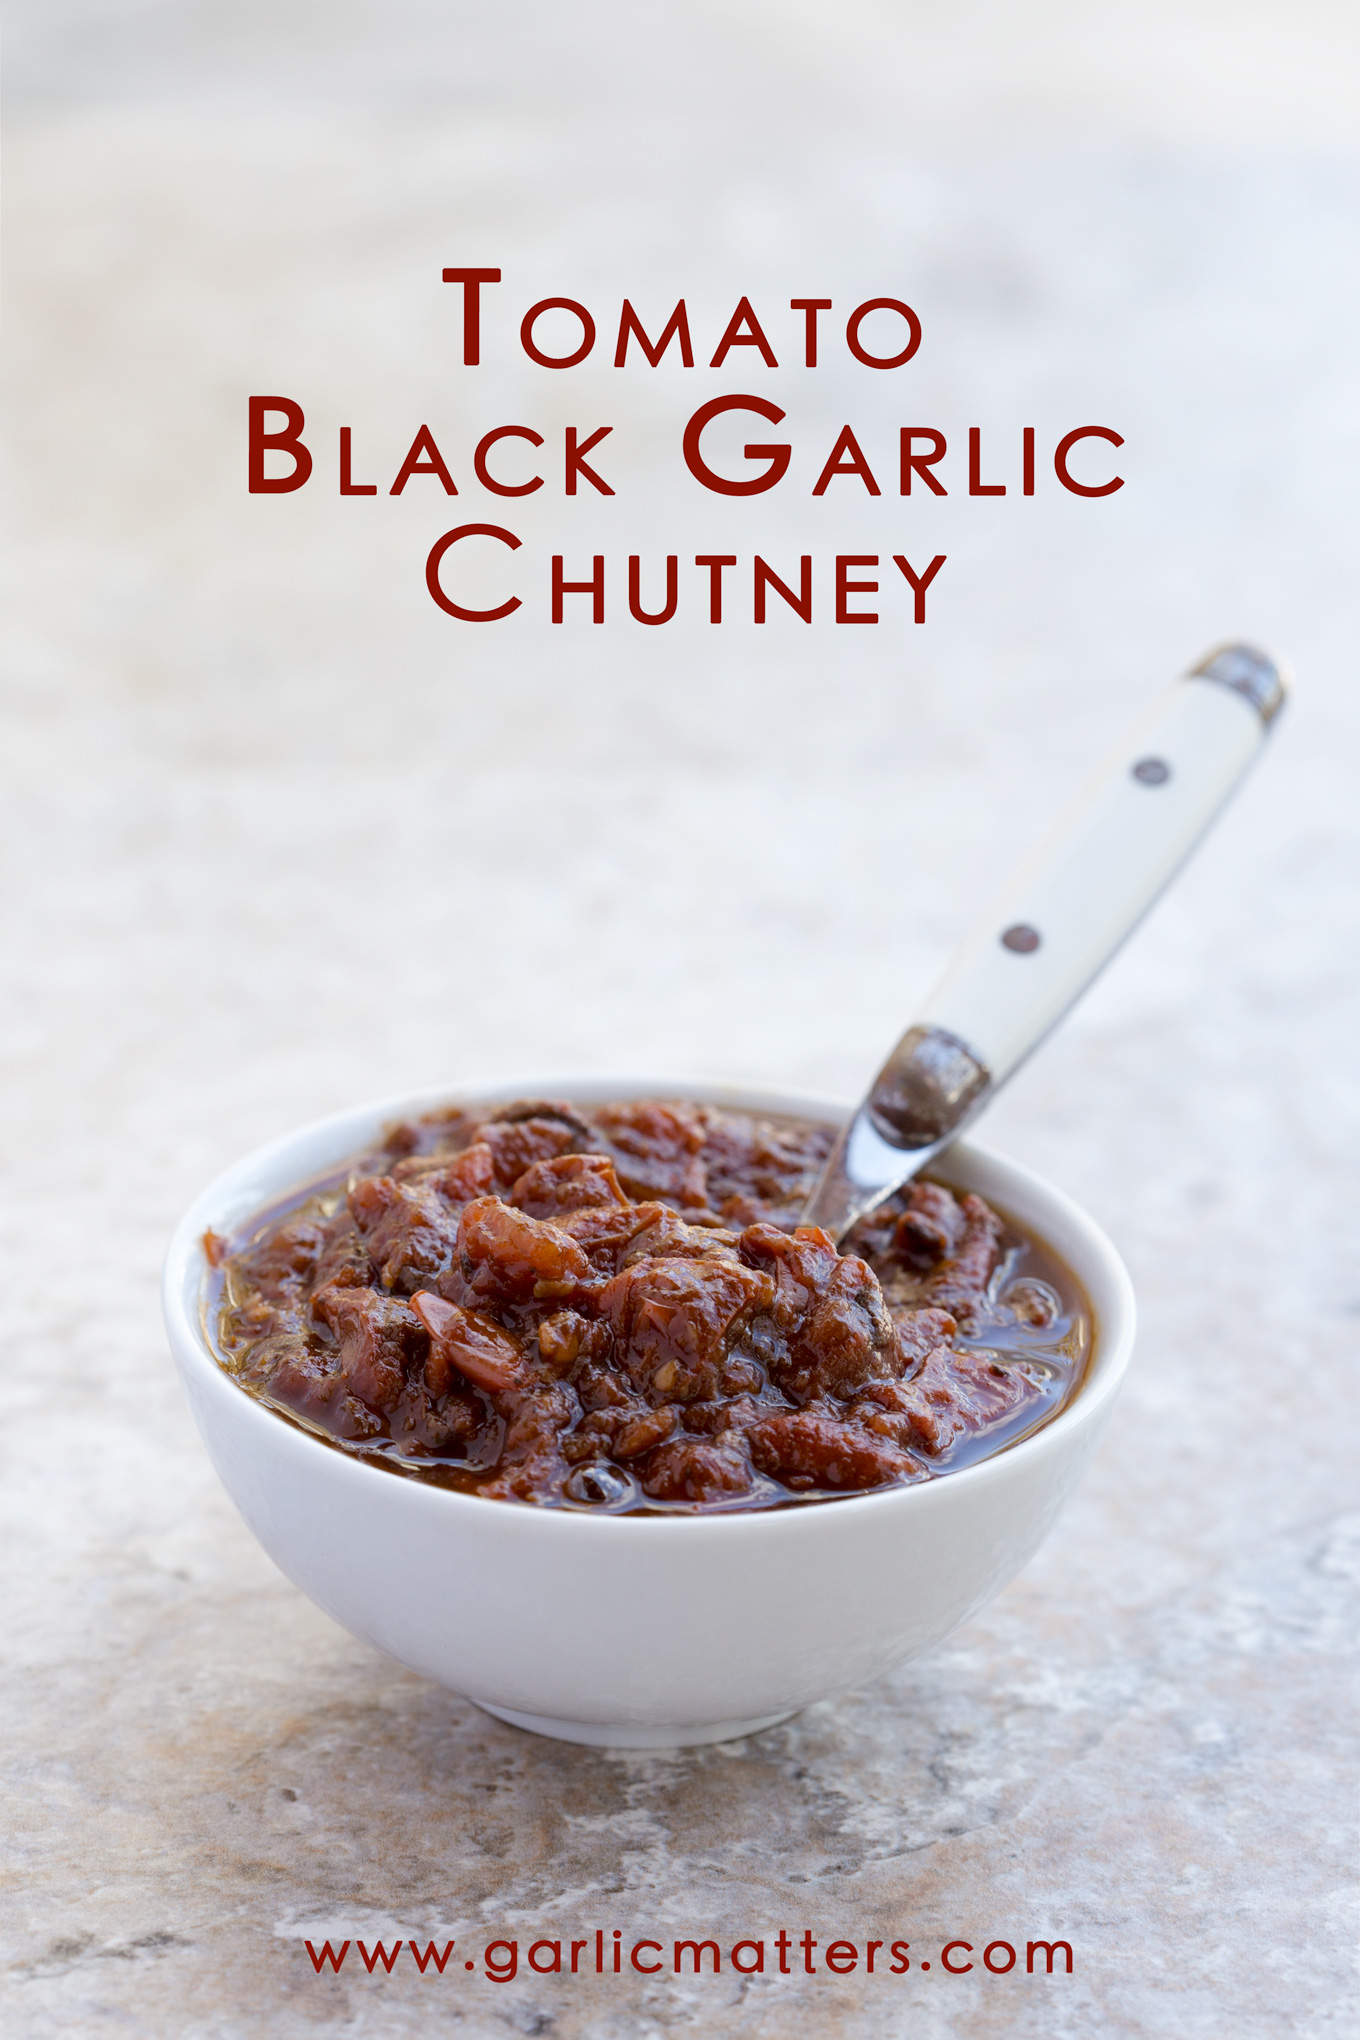 Tomato and Black Garlic Chutney - sweet and sour vegan condiment, packed with antioxidants. Easy, delicious and versatile 1 hour recipe.